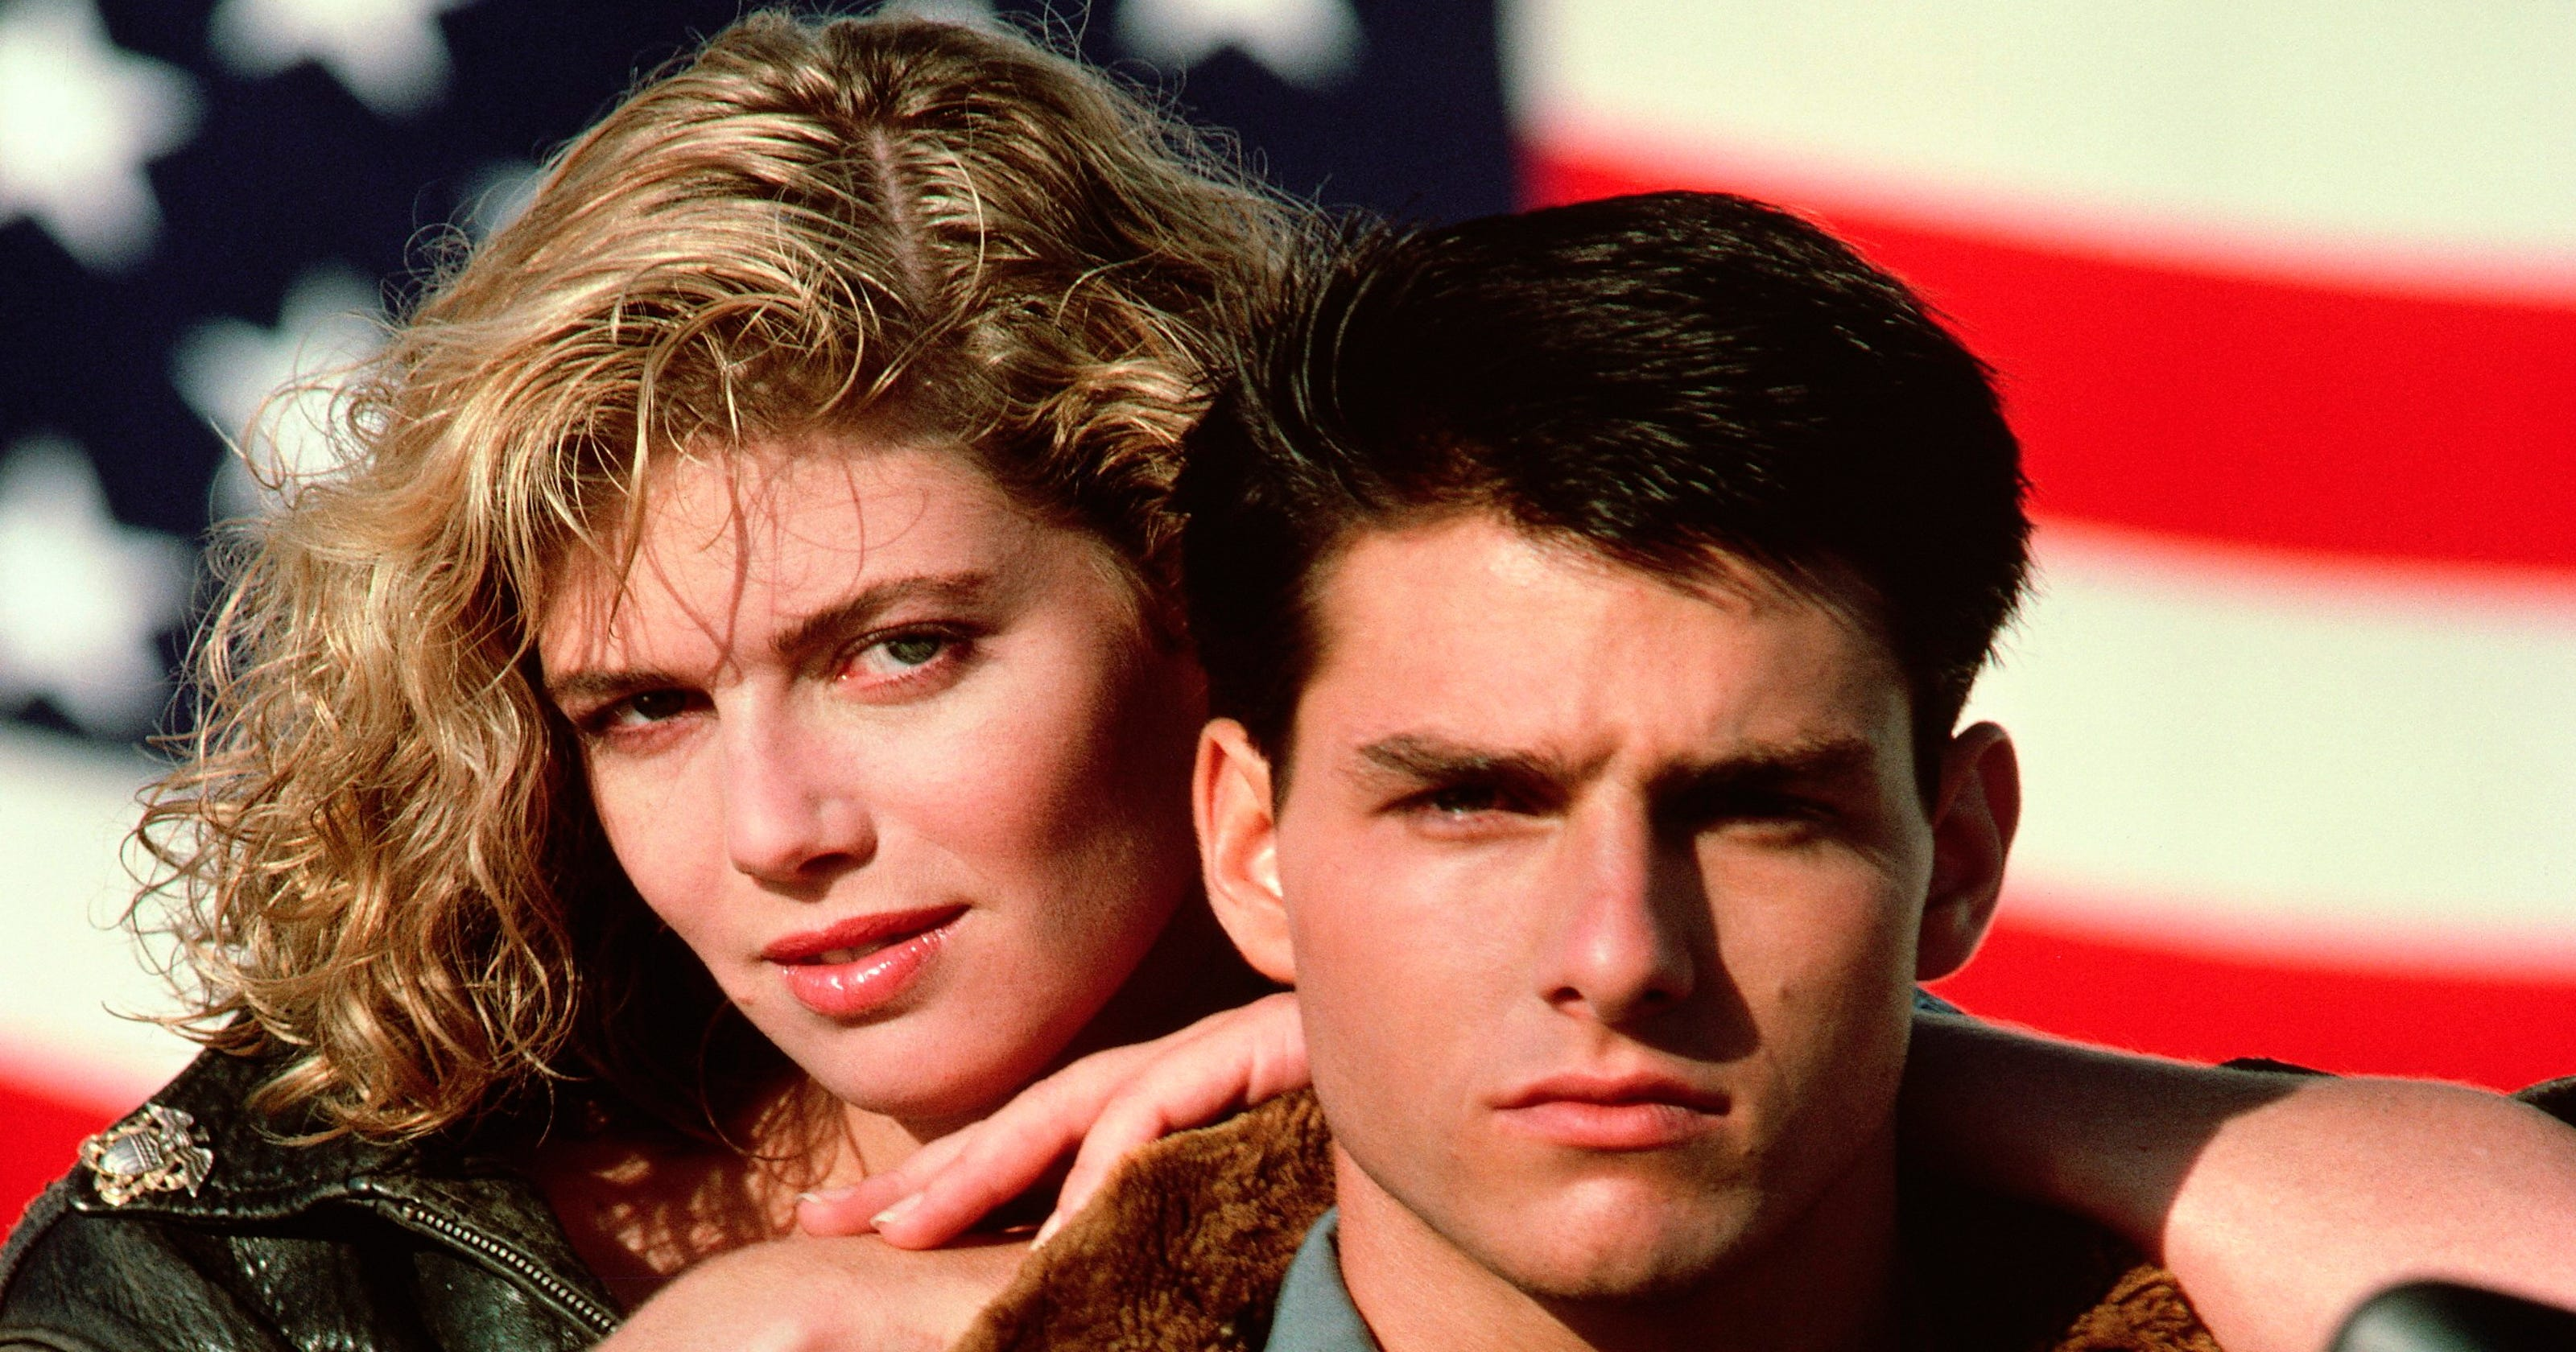 30 best quotes from 'Top Gun' for its 30th anniversary